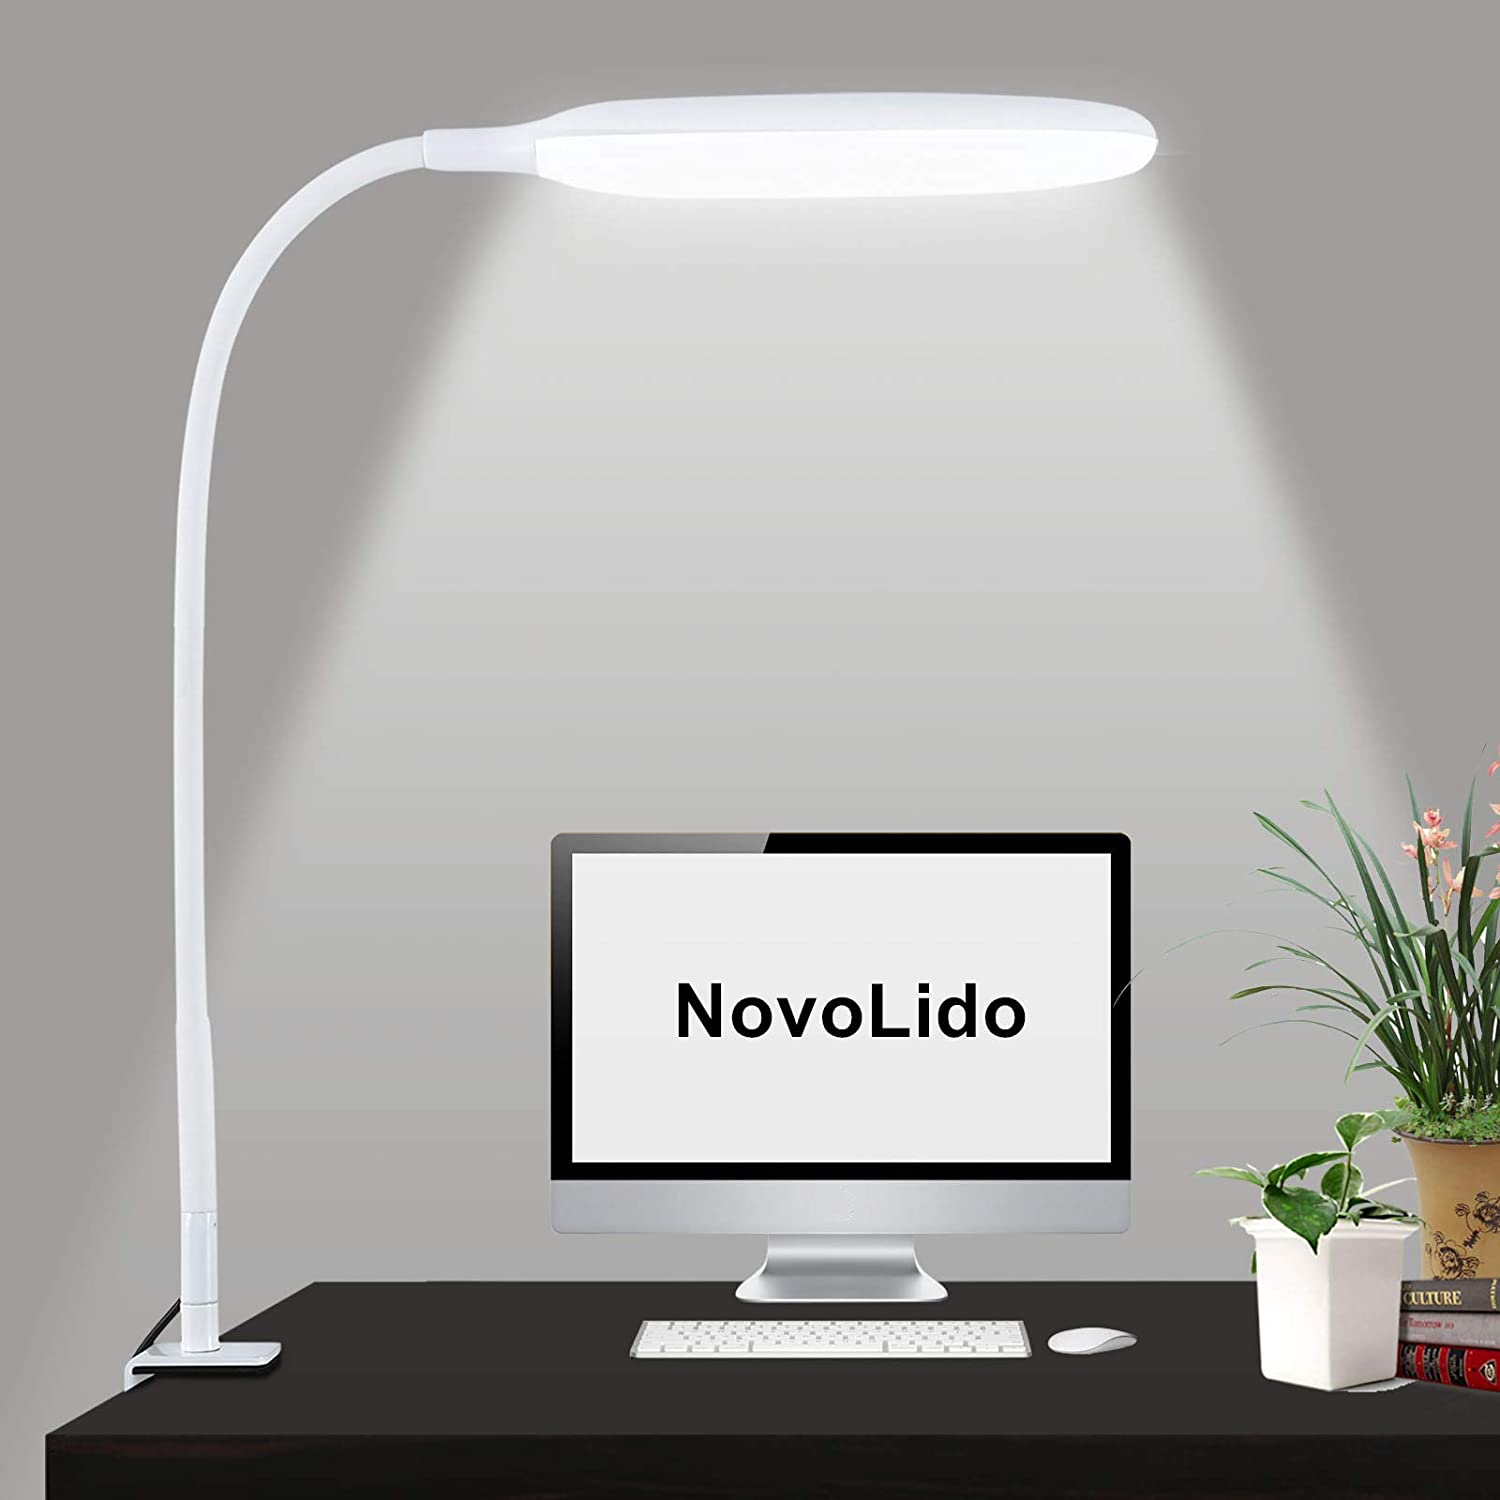 NovoLido 10W LED Desk Lamp with Clamp, 360° Flexible & Portable Desk Lamp with Eye Protection, 3 Color Modes & Stepless Dimming, Clip on Desk Lamp for Home, Office, Bedroom, College Dorm, White